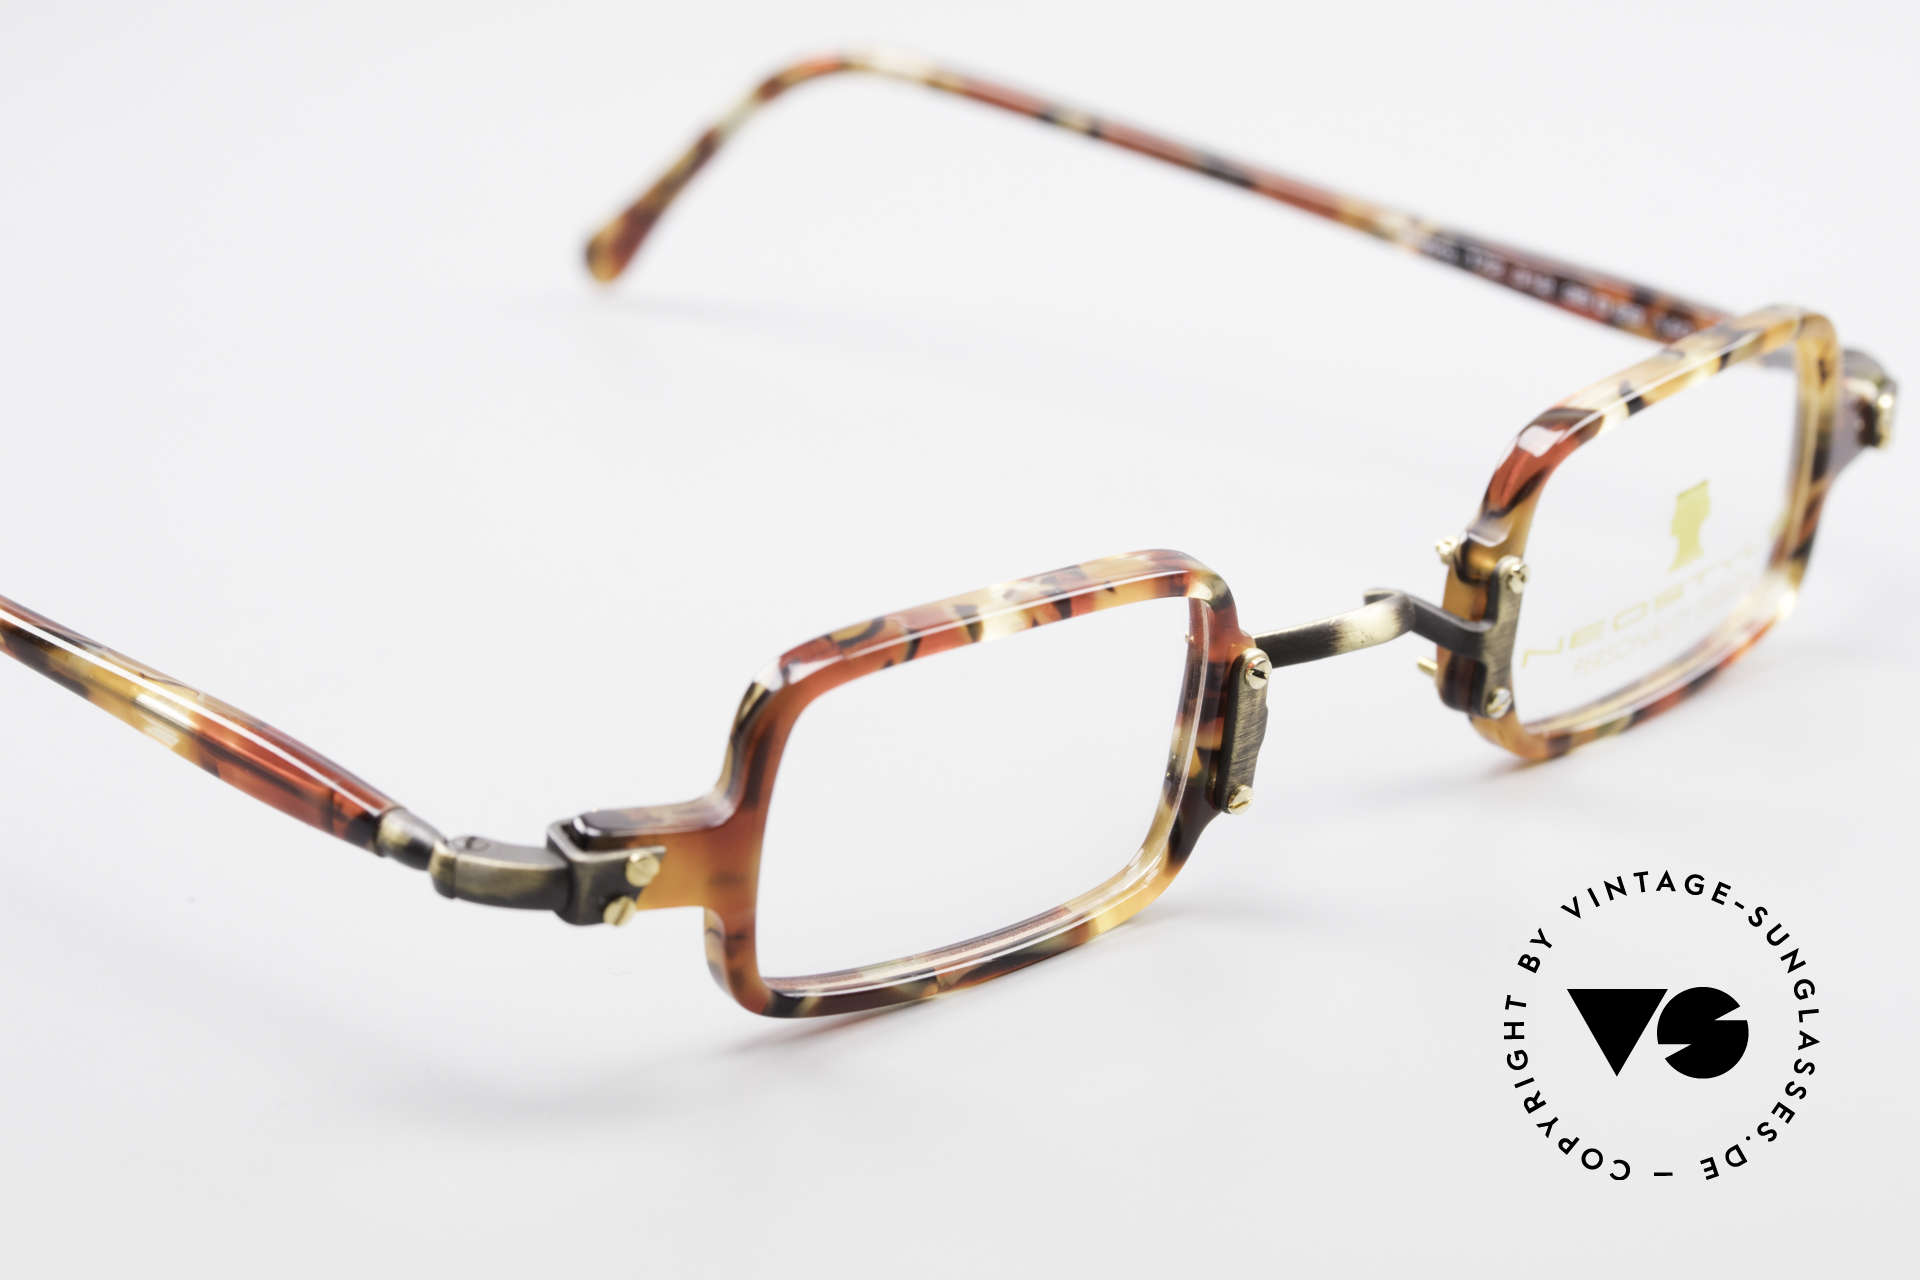 Neostyle Bistro 172 Square Vintage Unisex Frame, the frame can be glazed with optical (sun) lenses, Made for Men and Women